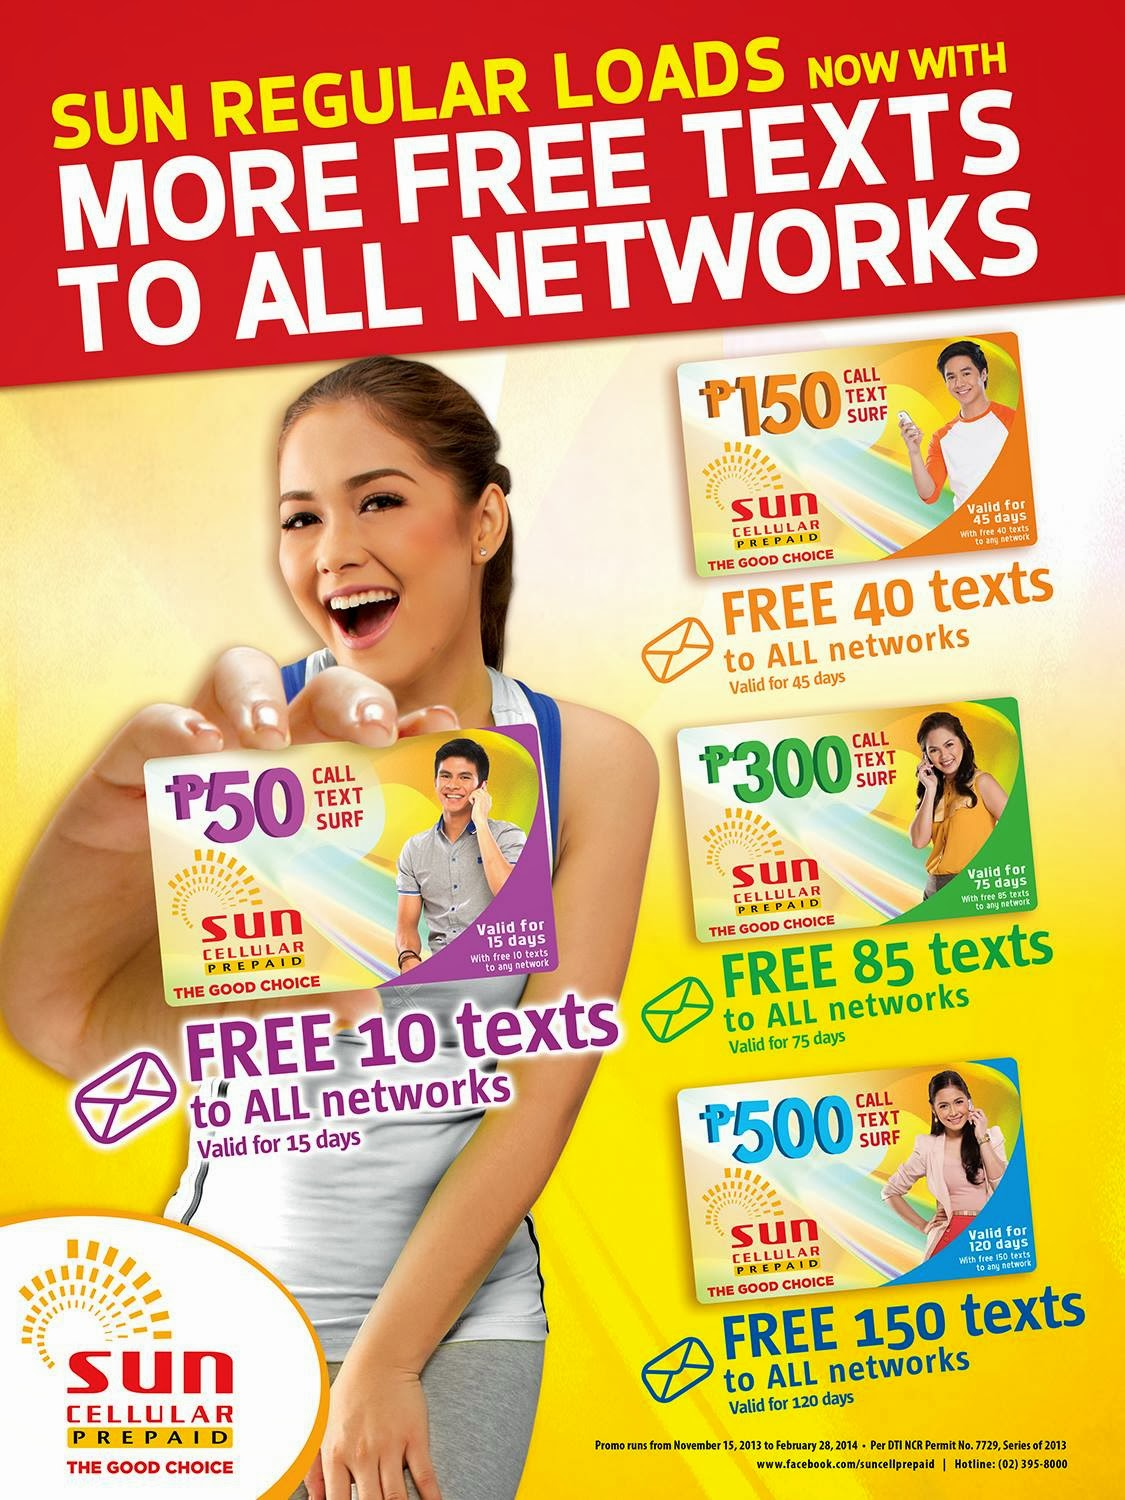 Sun Regular Load now Offers More FREE texts to ALL networks and Longer Validity